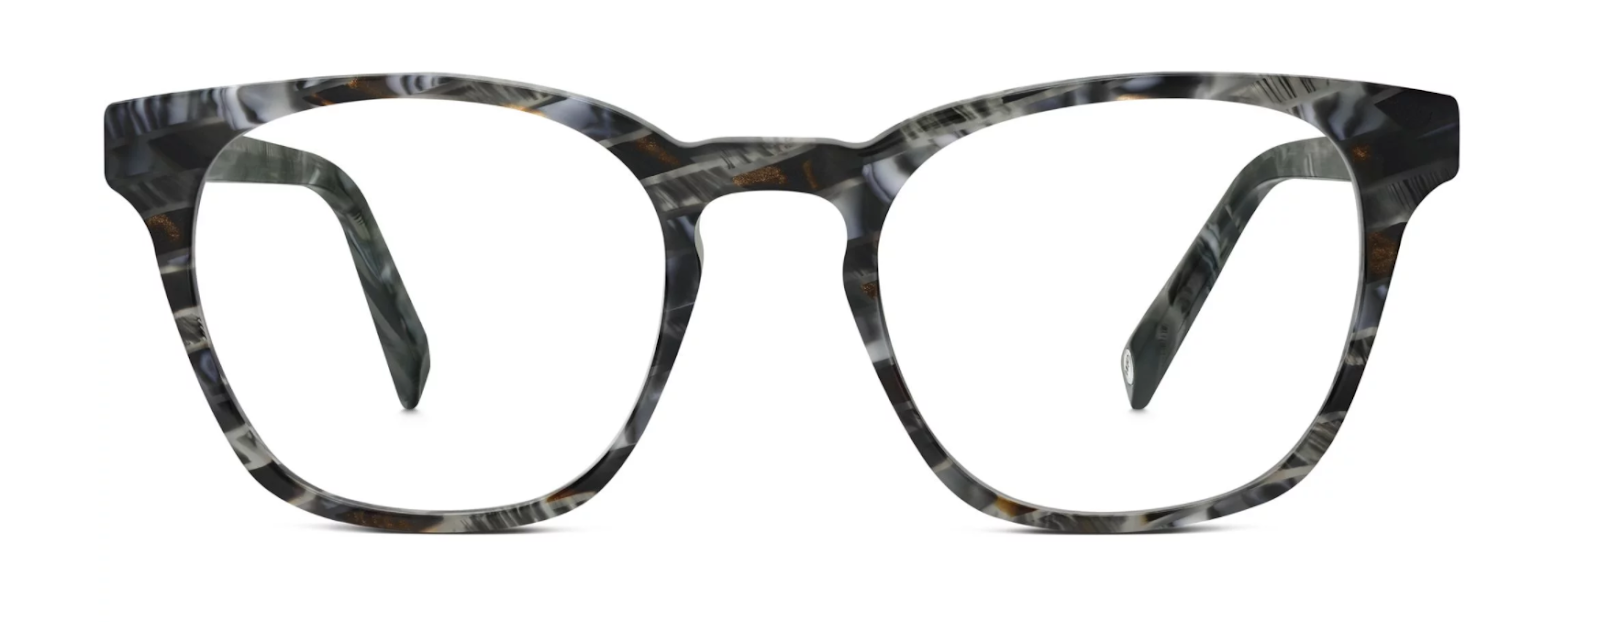 845bc846a0 How to choose the perfect glasses for your face shape